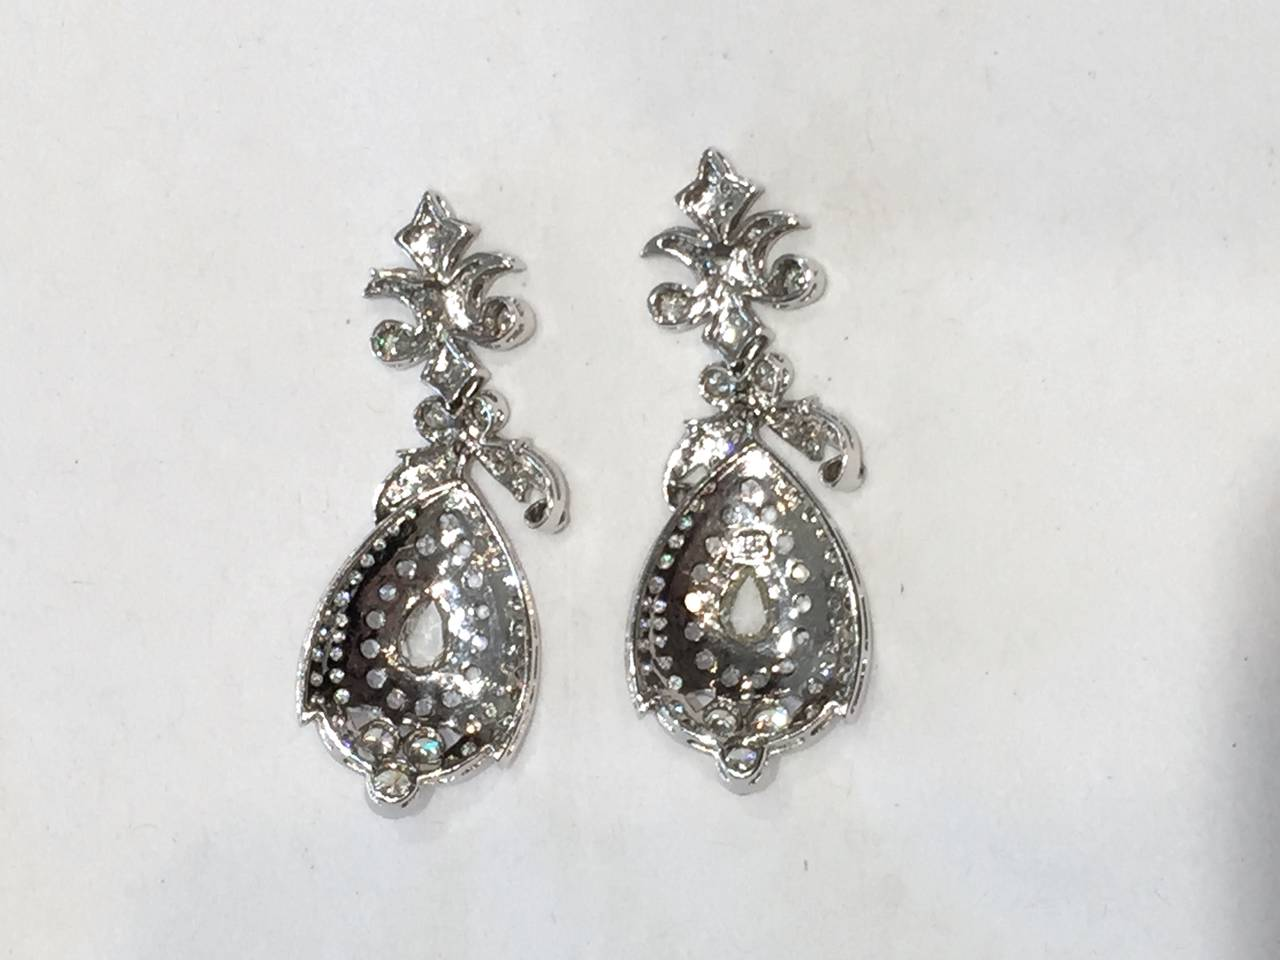 Beautiful Diamond Chandelier Earrings.  The large rose cut pear shaped diamonds in the center weigh approximately .75cts each. The total diamond weight is 5.78cts. The diamonds are a combination of brilliant and rose cut diamonds. The earrings are